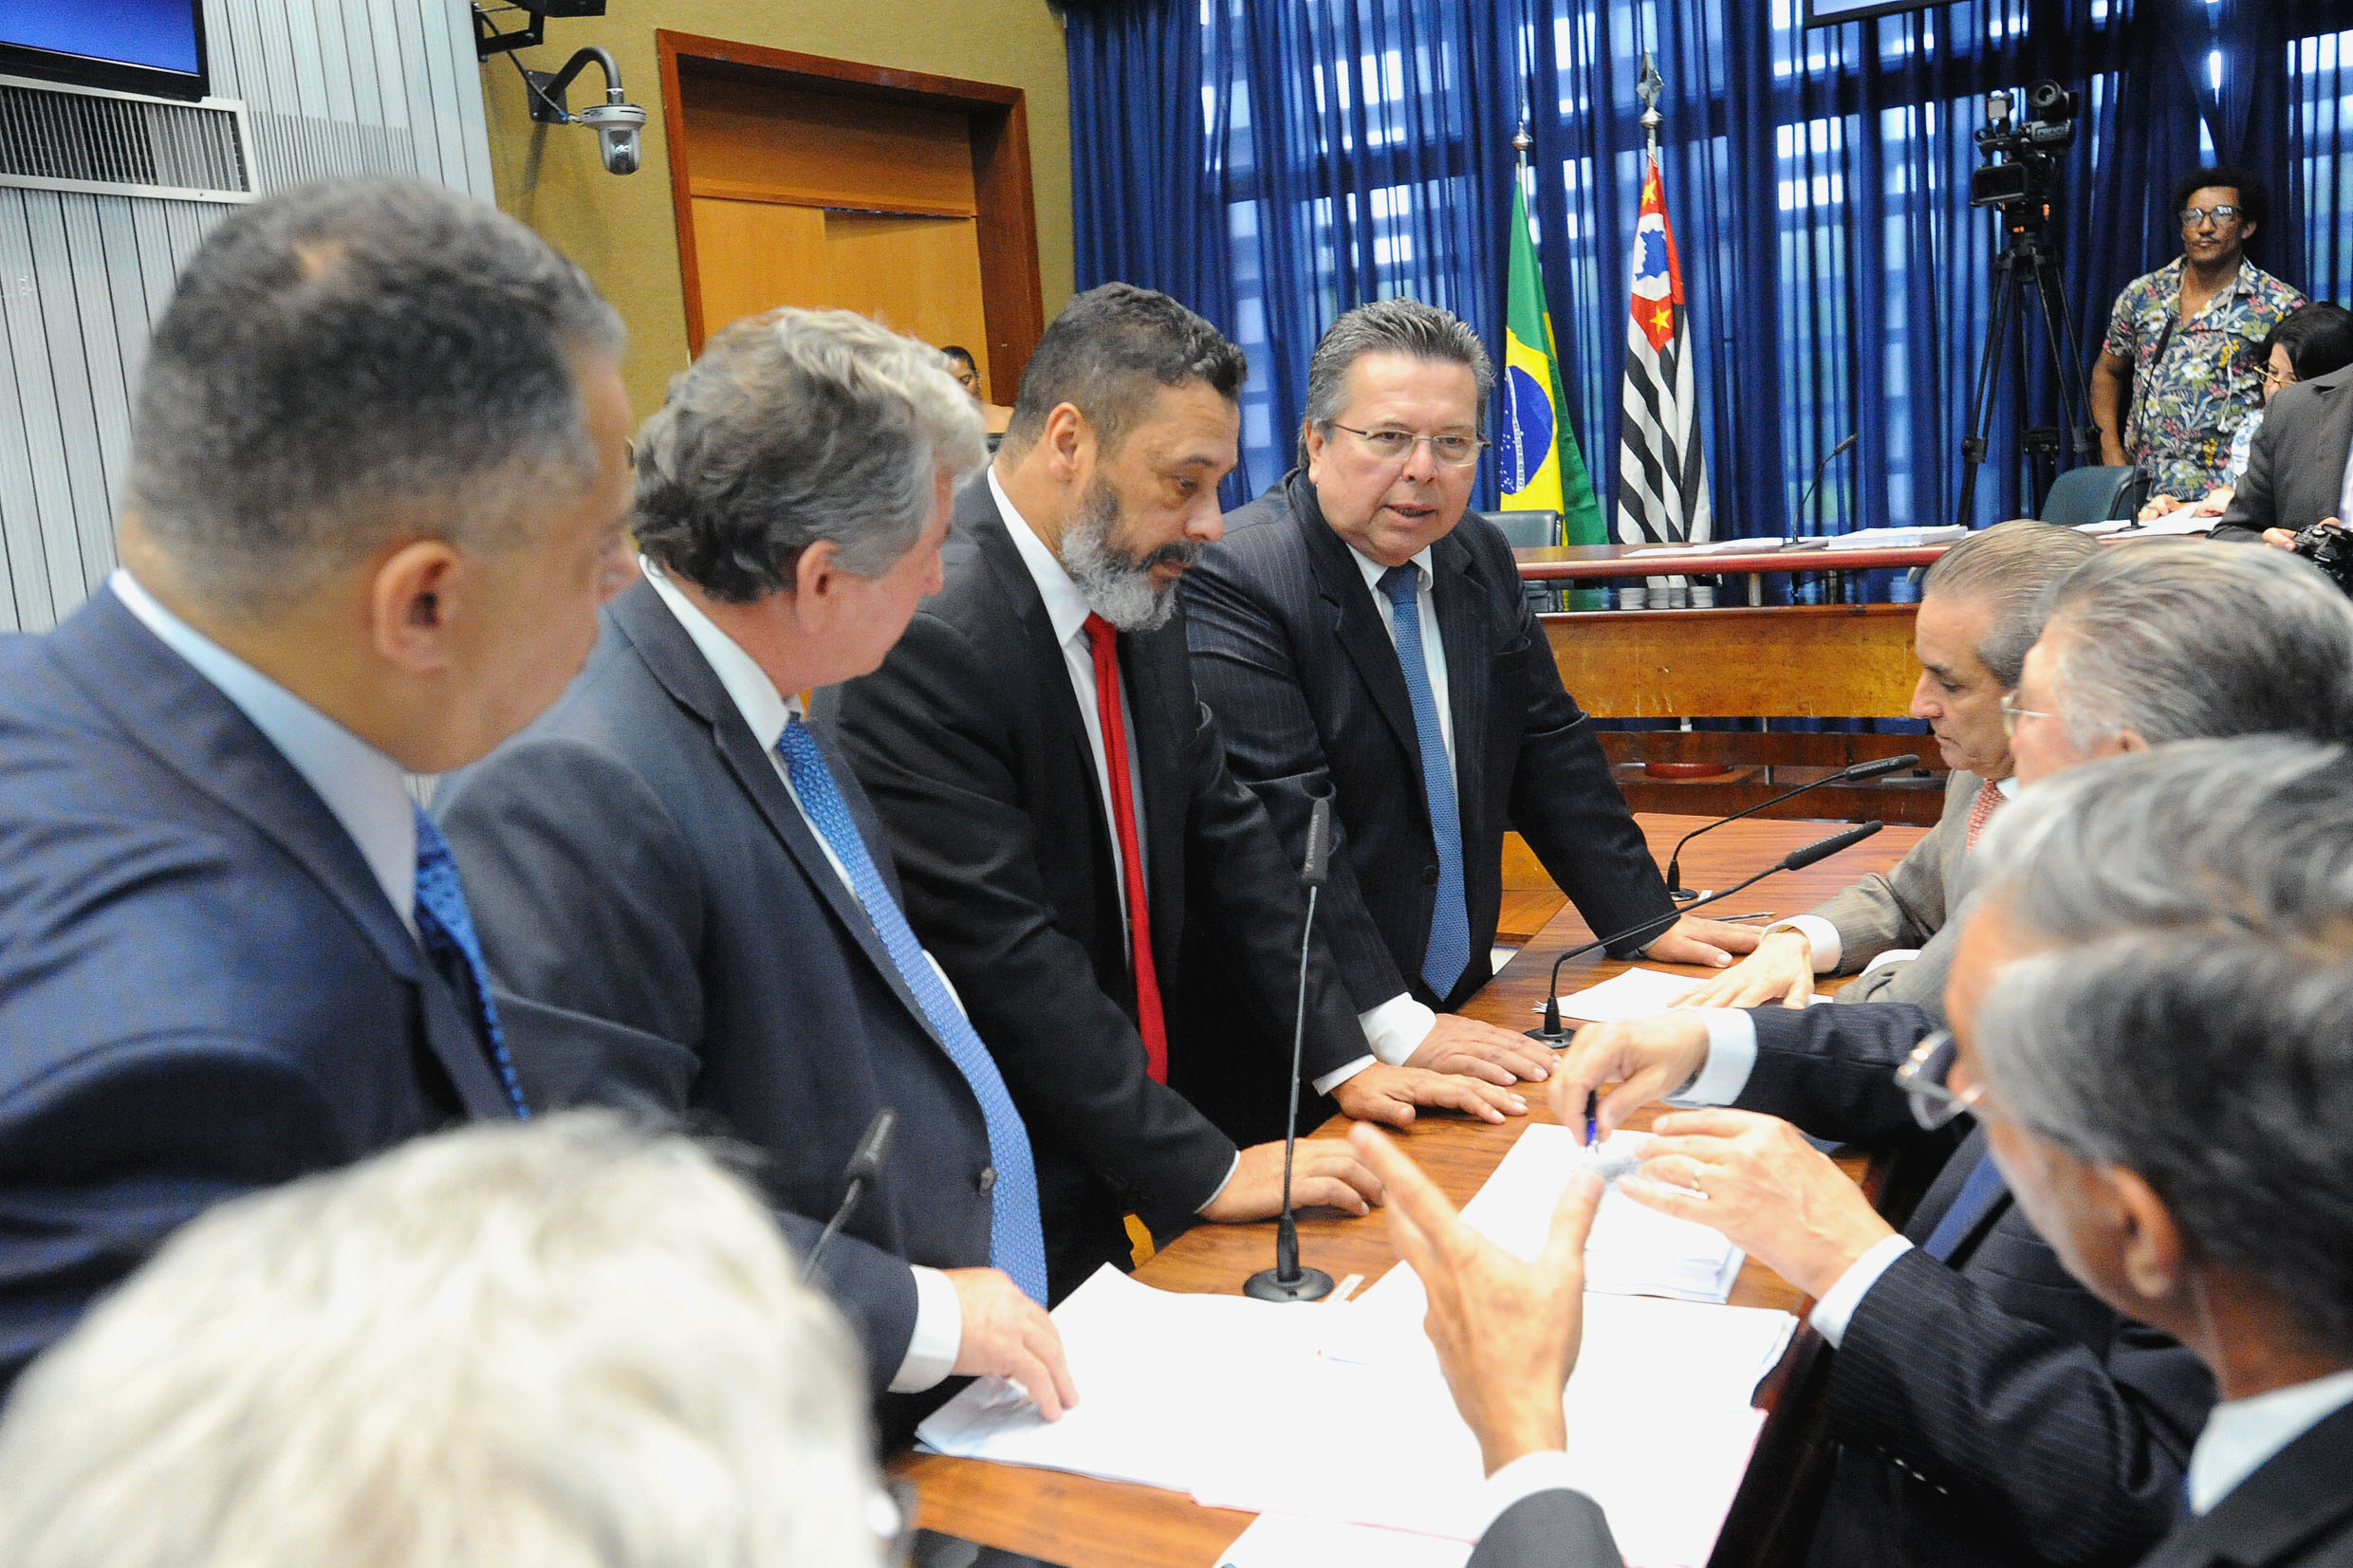 Parlamentares na comissão <a style='float:right' href='https://www3.al.sp.gov.br/repositorio/noticia/N-12-2018/fg228738.jpg' target=_blank><img src='/_img/material-file-download-white.png' width='14px' alt='Clique para baixar a imagem'></a>